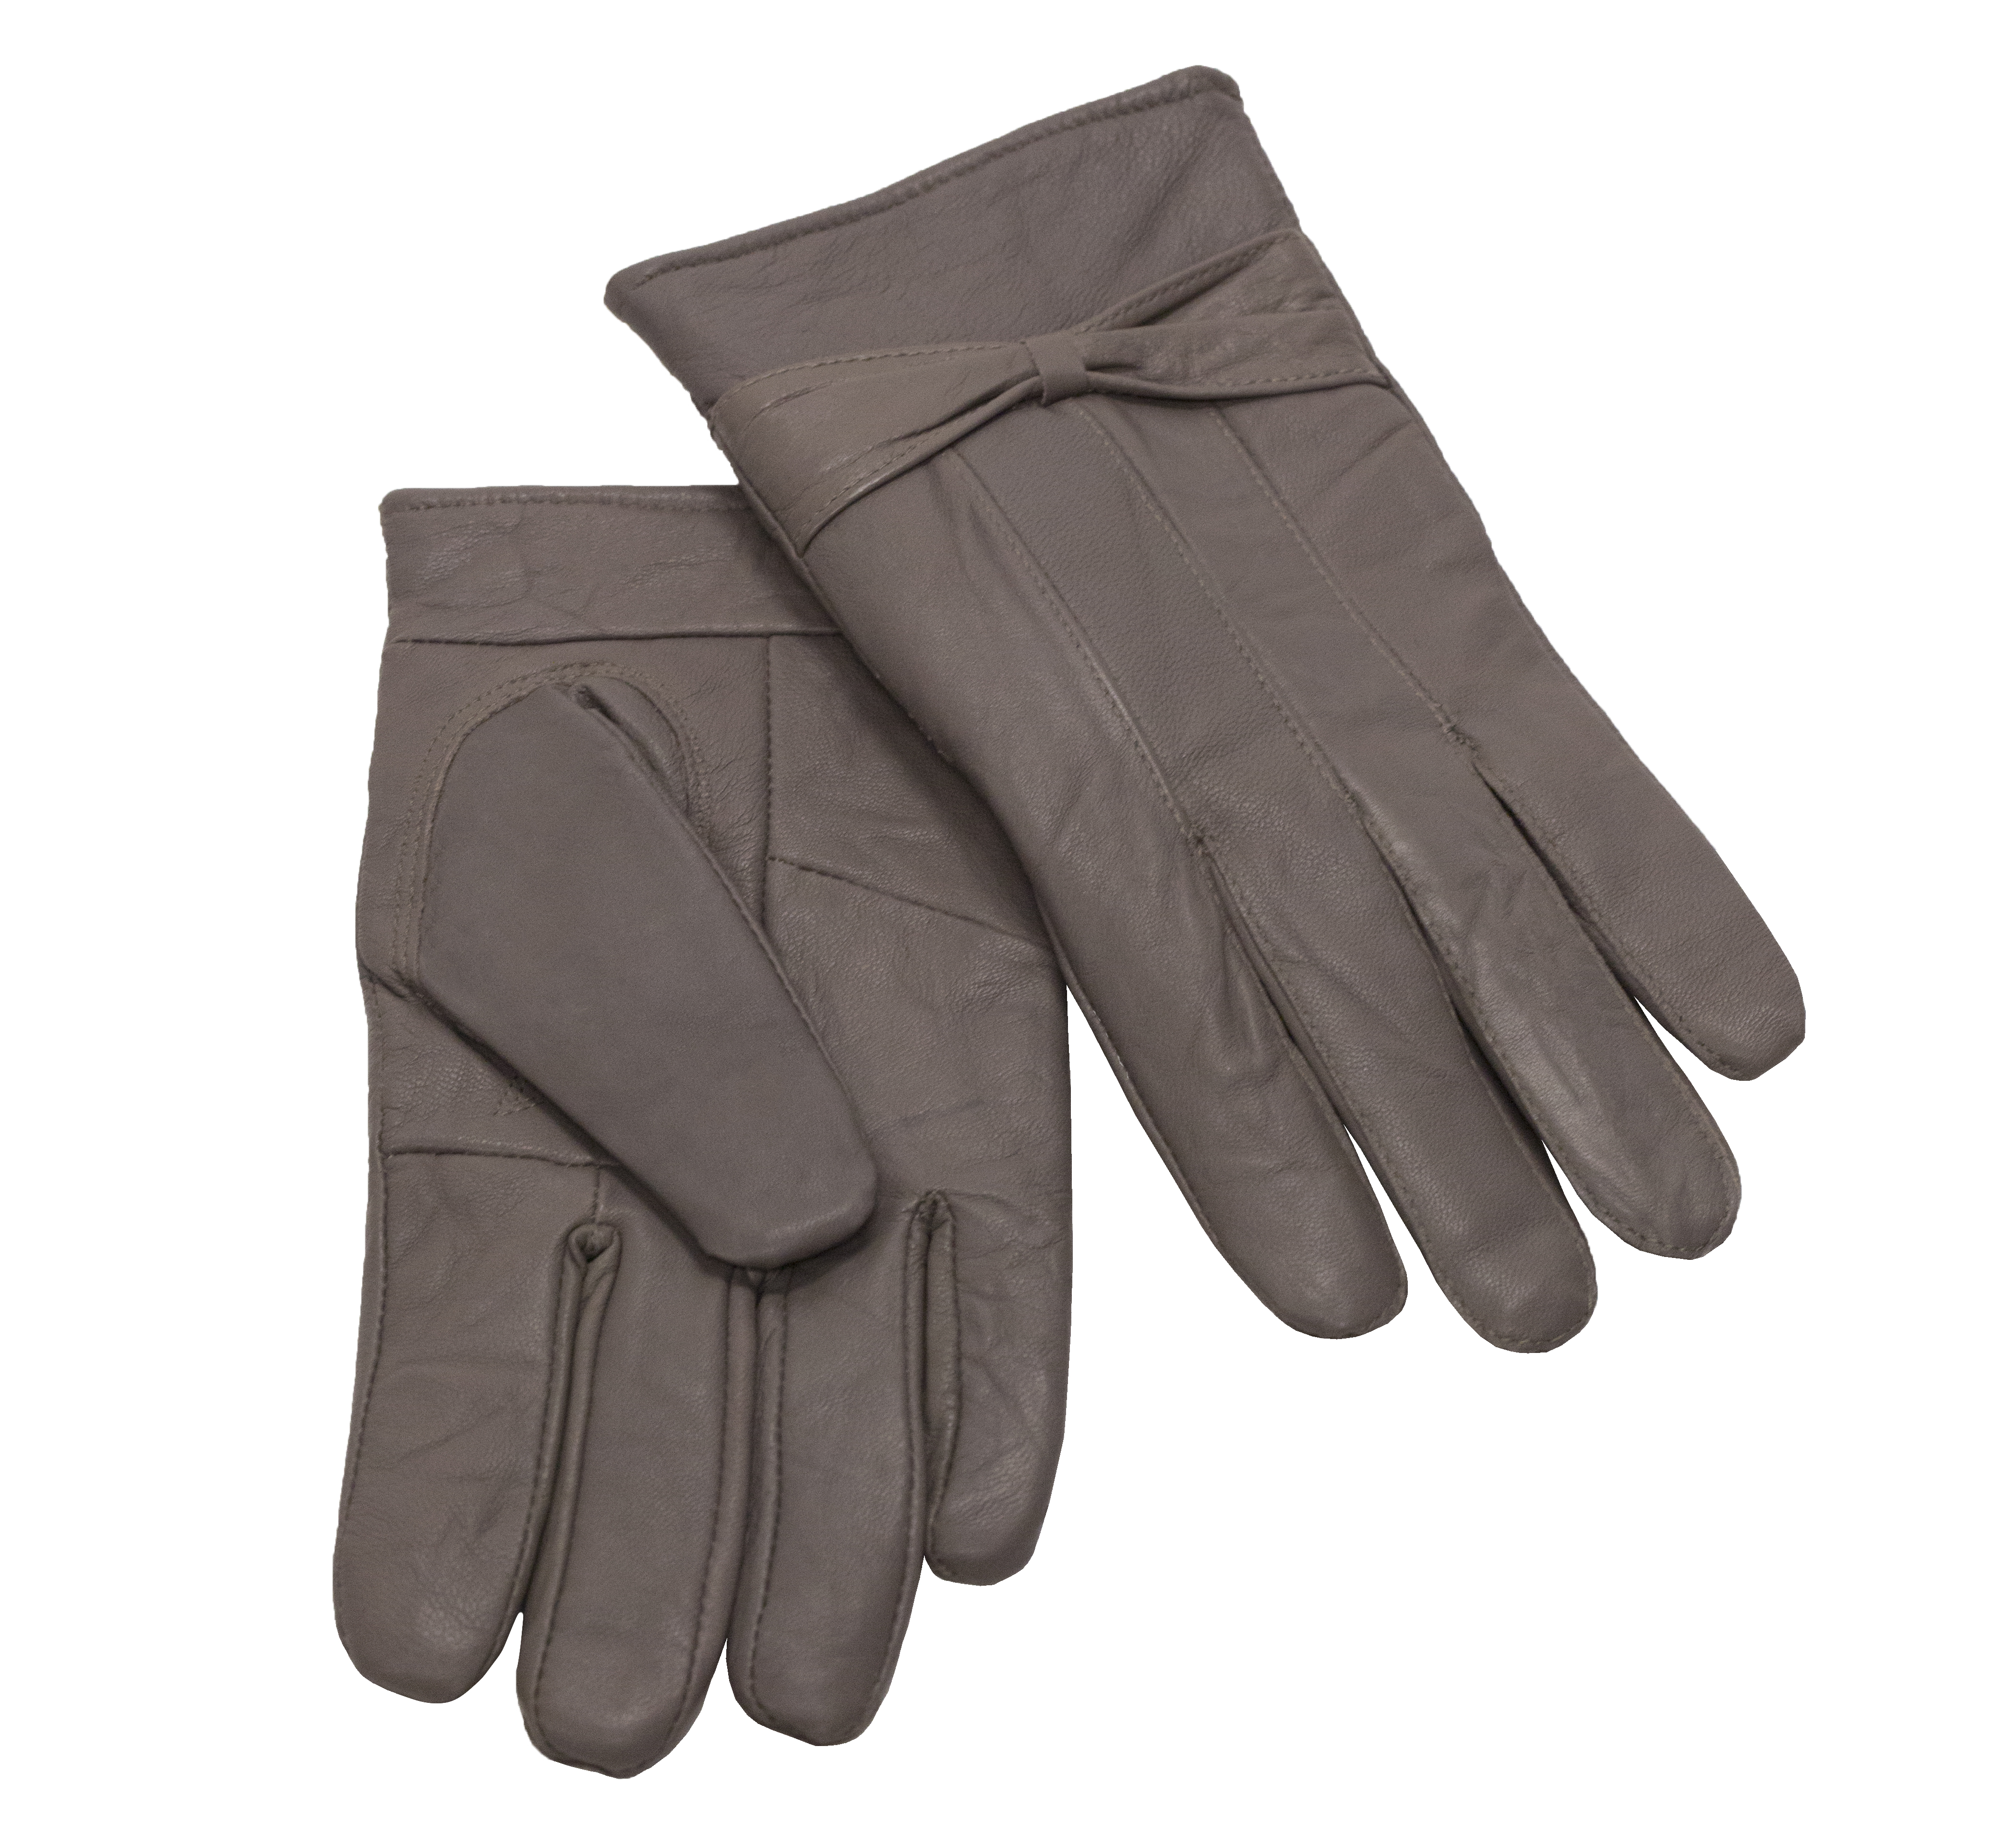 MoDA Ms Barcelona Womens Genuine Leather Assorted Colors Cold Weather Gloves with Bow C0101 Chocolate